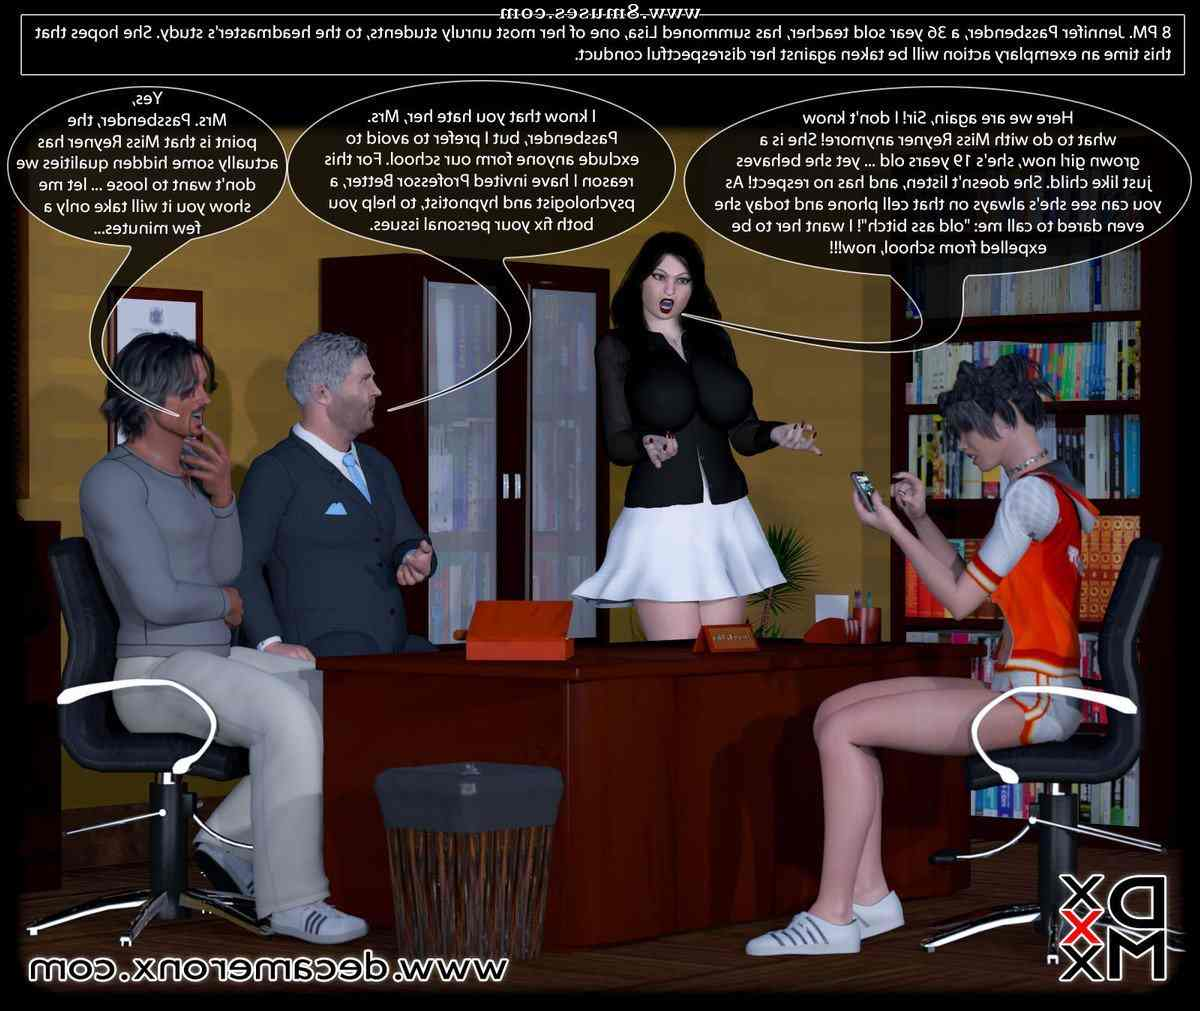 Decameron-X-Comics/Hypno-Girls-Kinky-School-Part-One Hypno_Girls_-_Kinky_School_Part_One__8muses_-_Sex_and_Porn_Comics_2.jpg